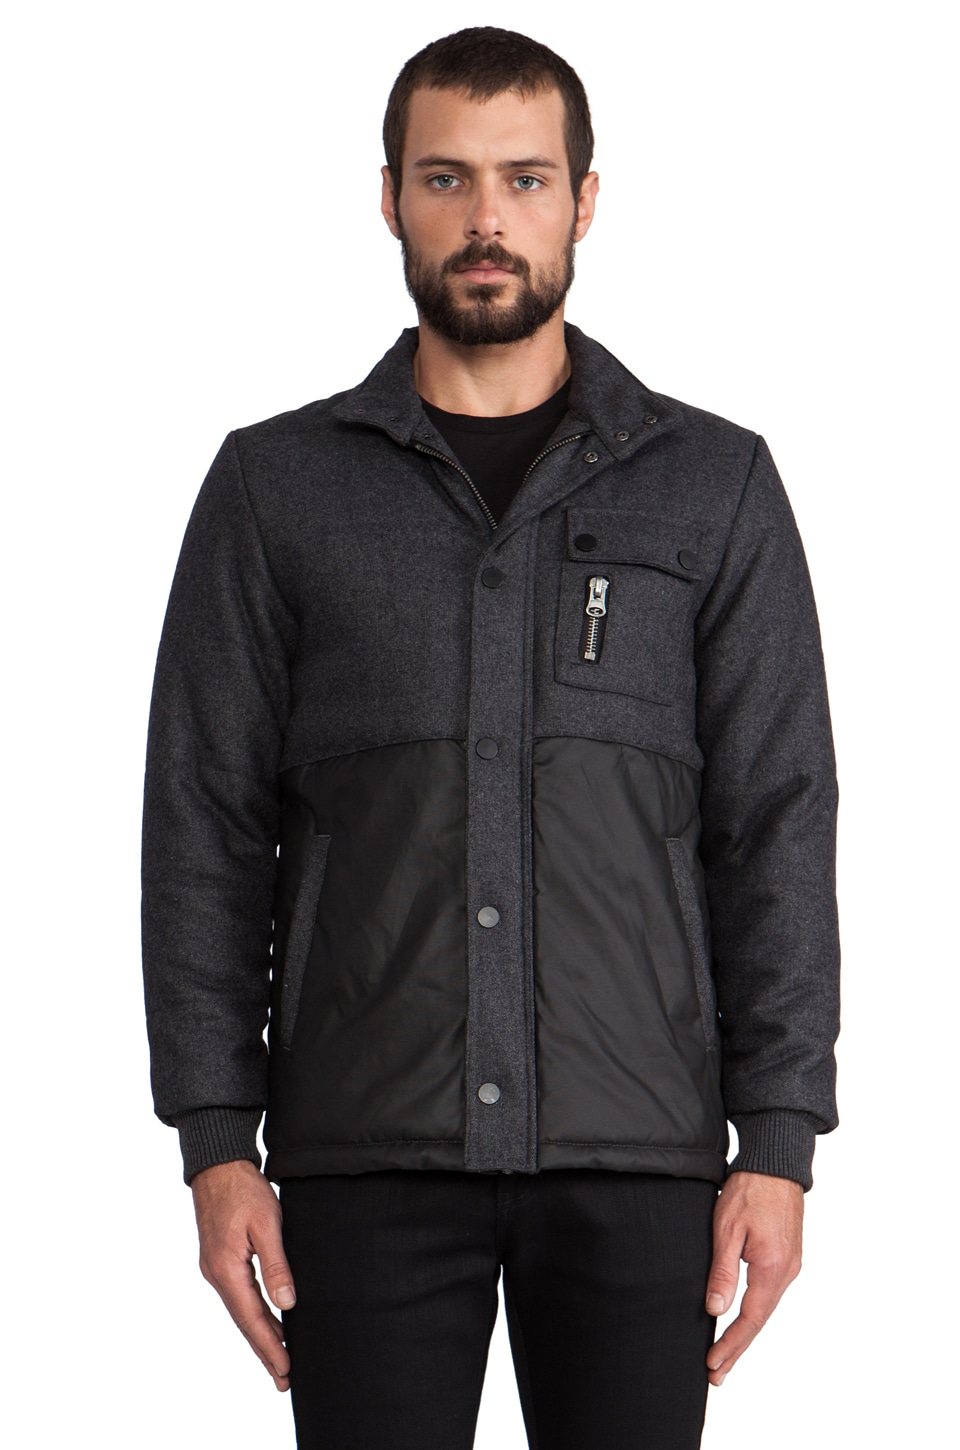 COMUNE Ryland Jacket in Charcoal